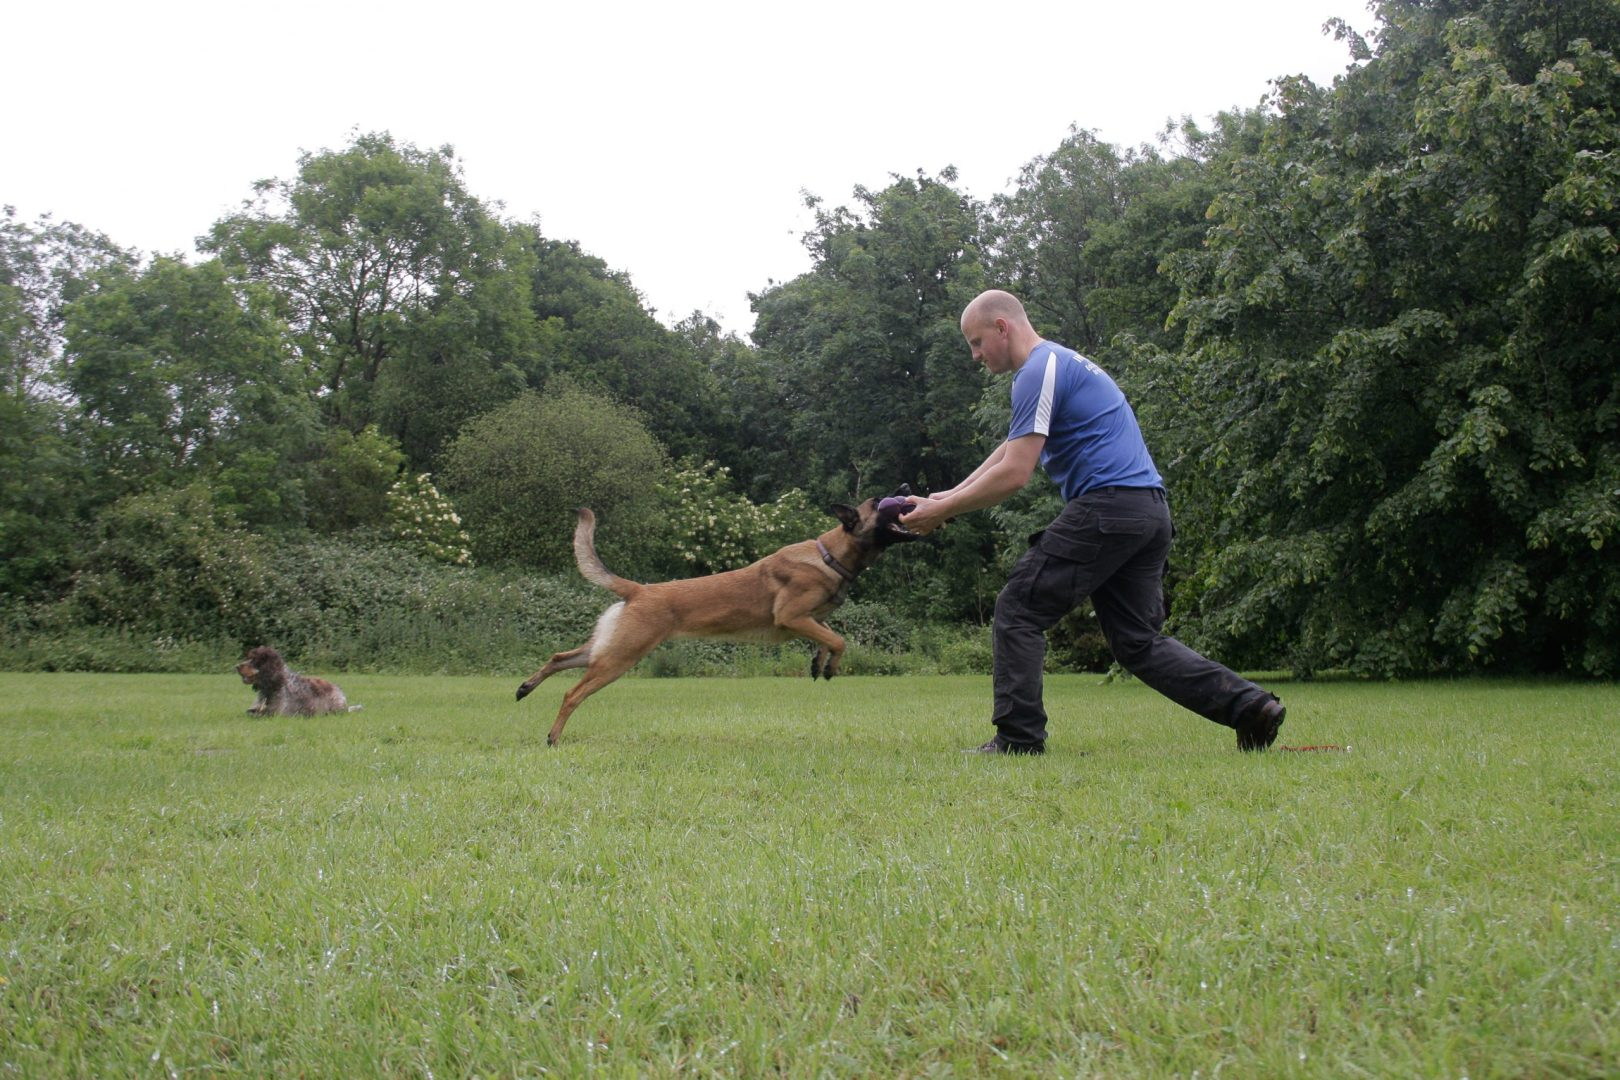 Alistair Spinks training a dog